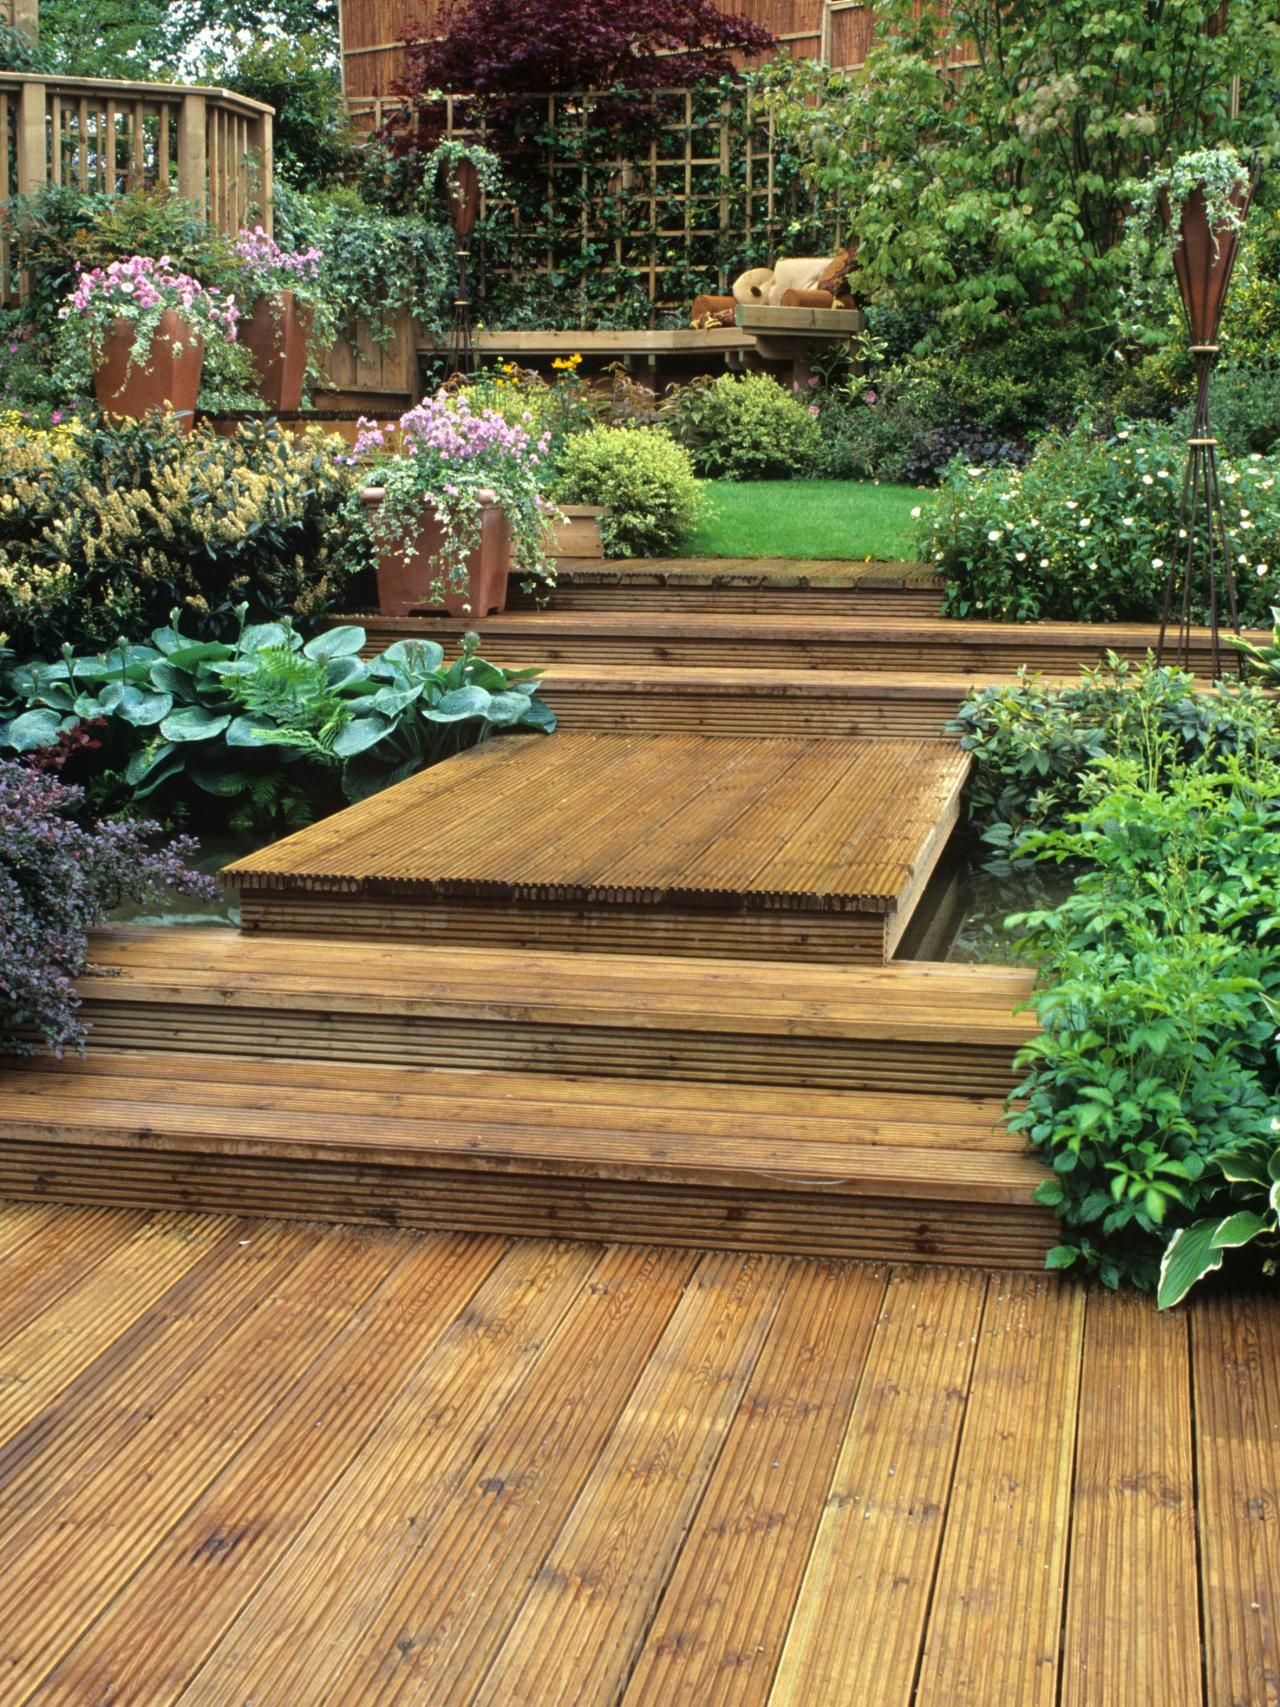 gentle changes of level in a garden offer visual interest and depth to the design  for practical